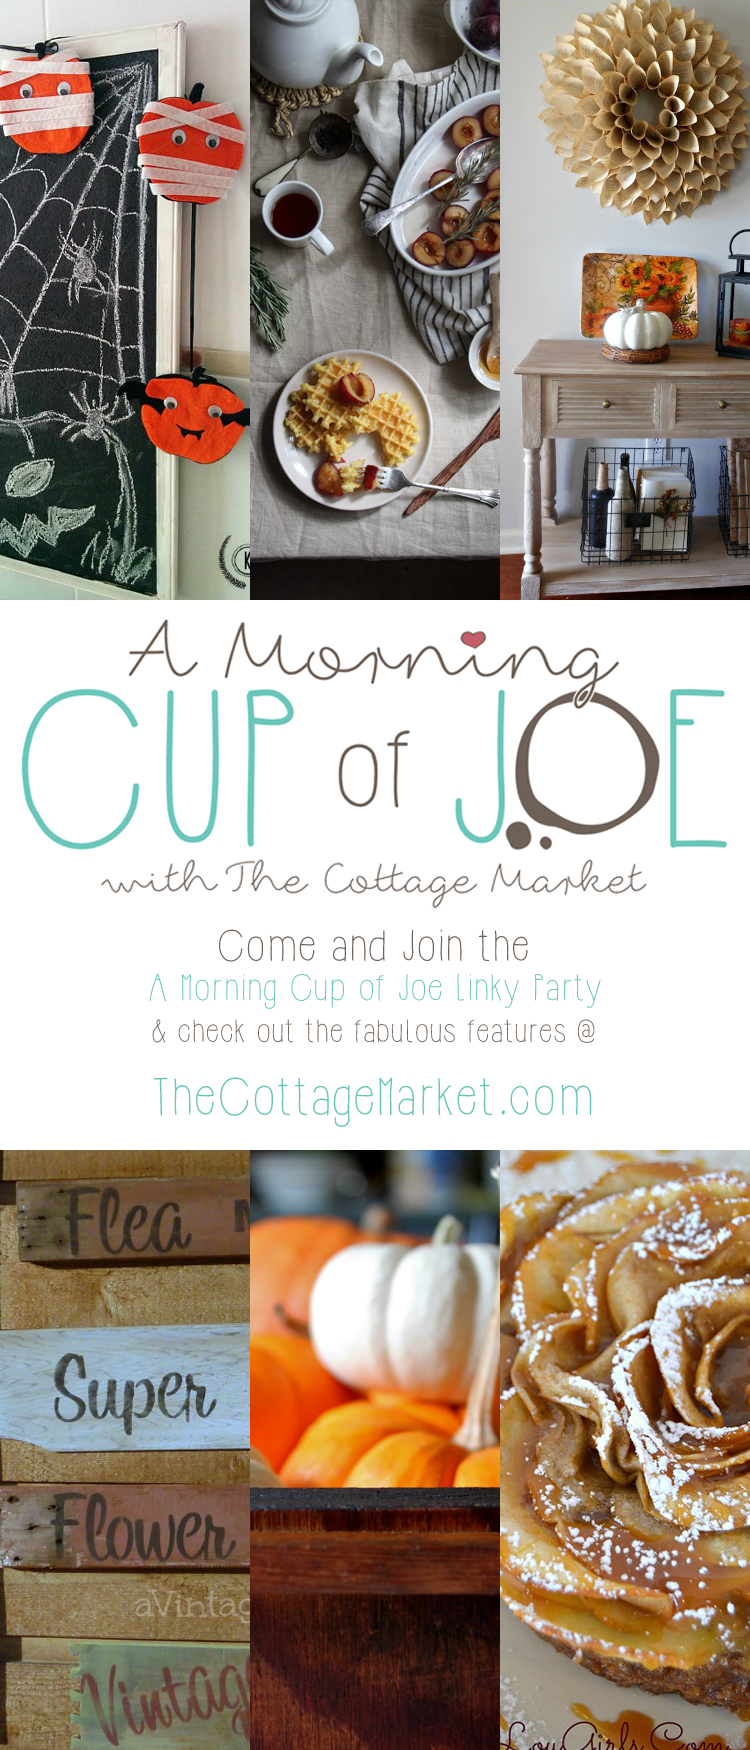 http://thecottagemarket.com/wp-content/uploads/2015/10/cuppa103015.png